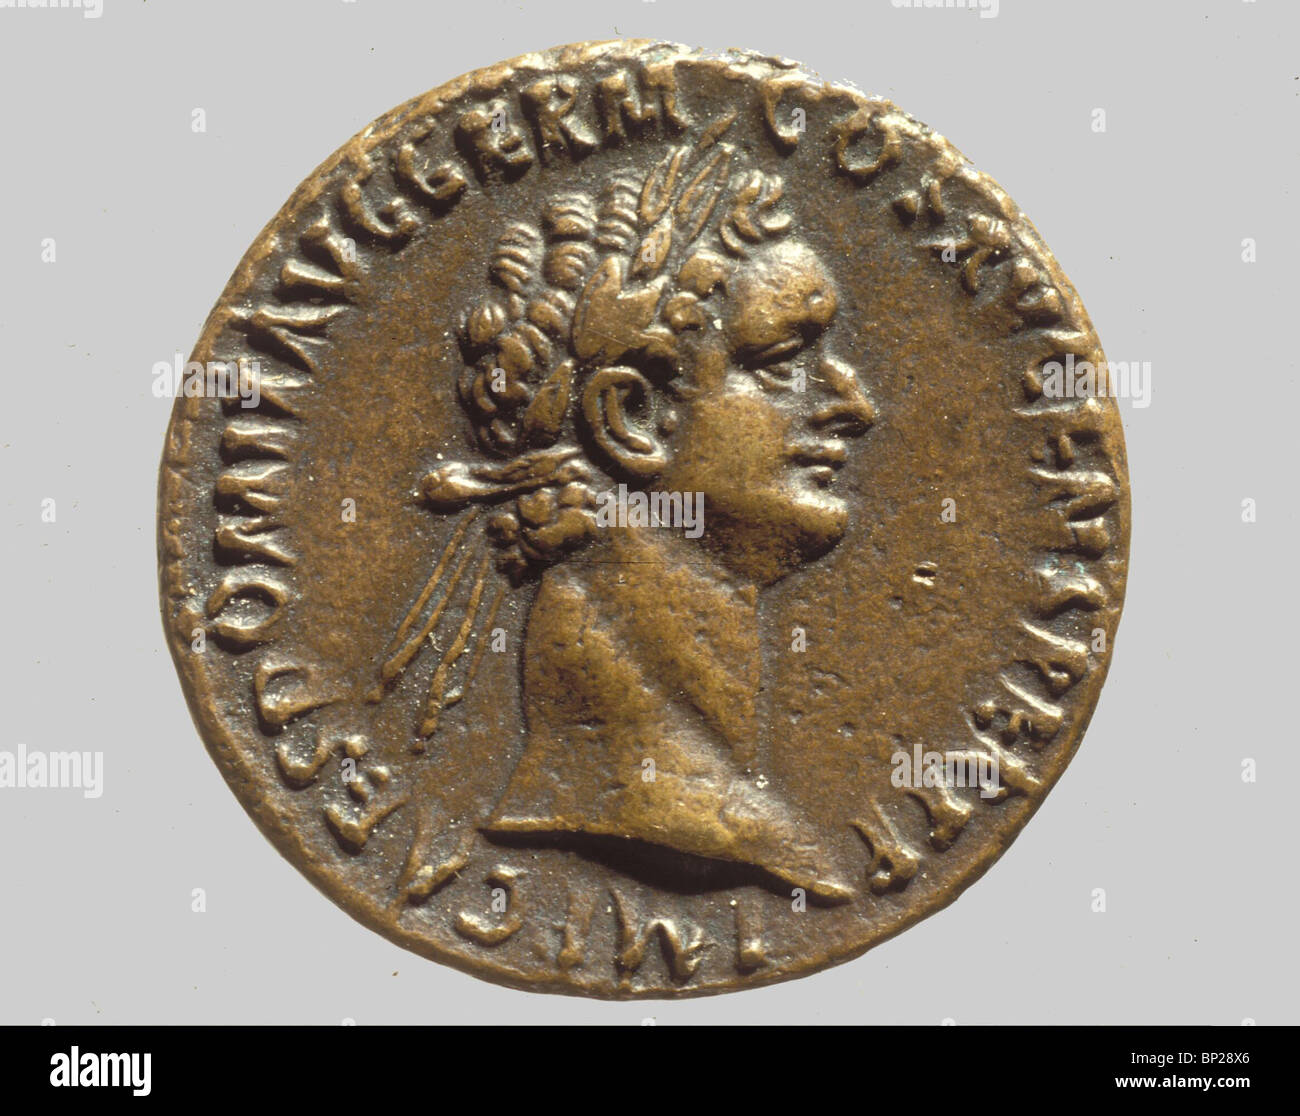 2385. ROMAN COIN WITH THE BUST OF EMPEROR DOMITIANUS (69 - 79 AD)